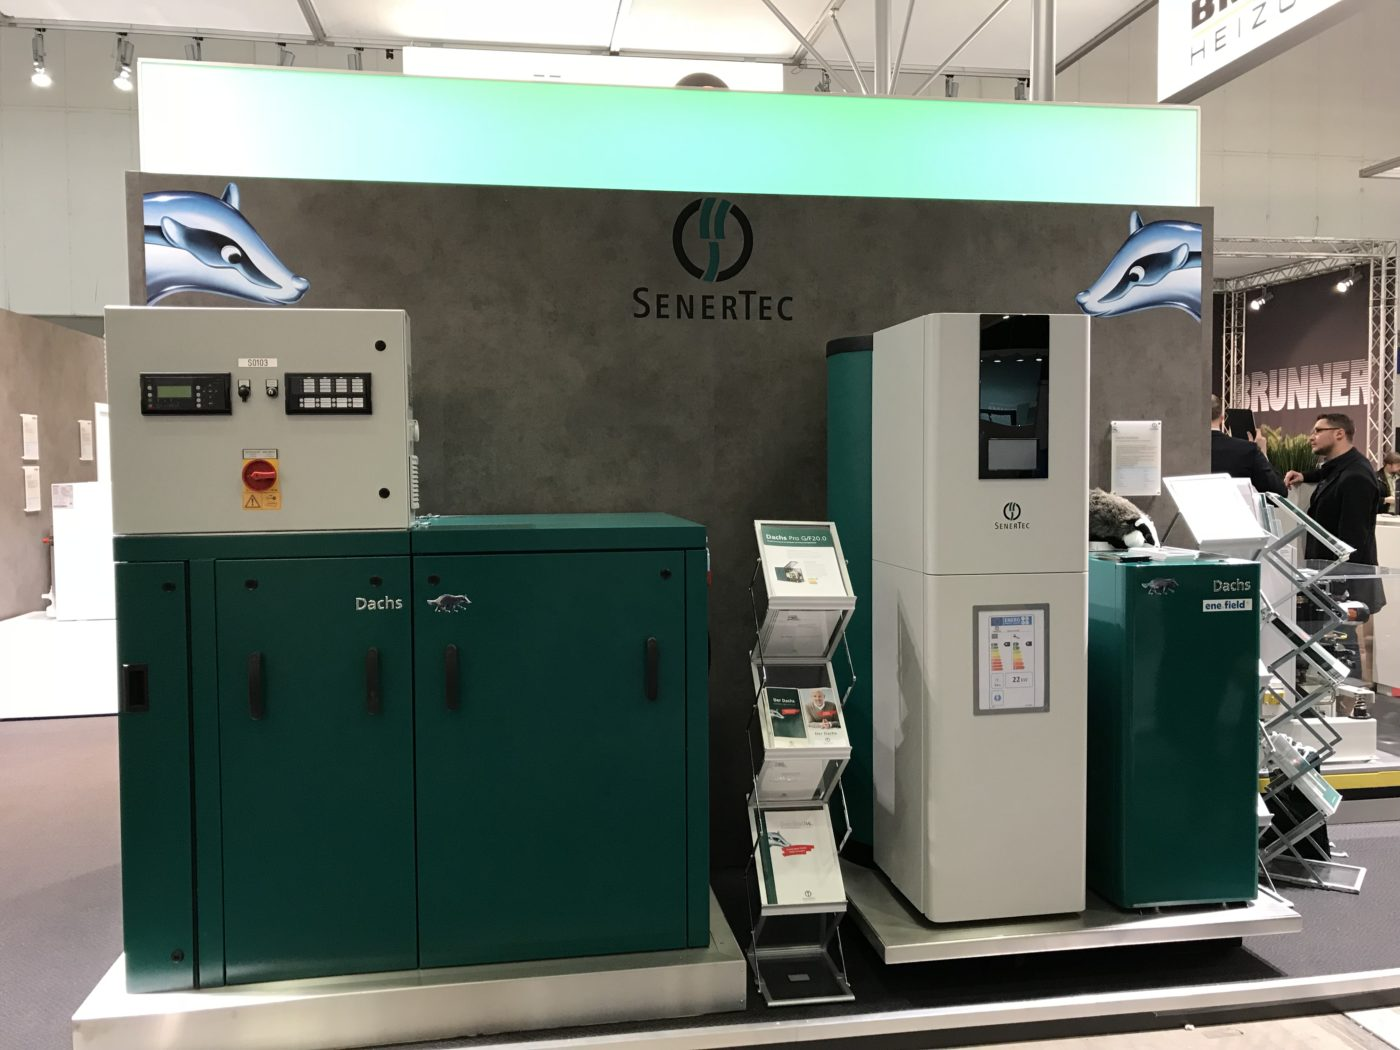 Messestand des SenerTec Center Berlin-Brandenburg auf der bautec 2018